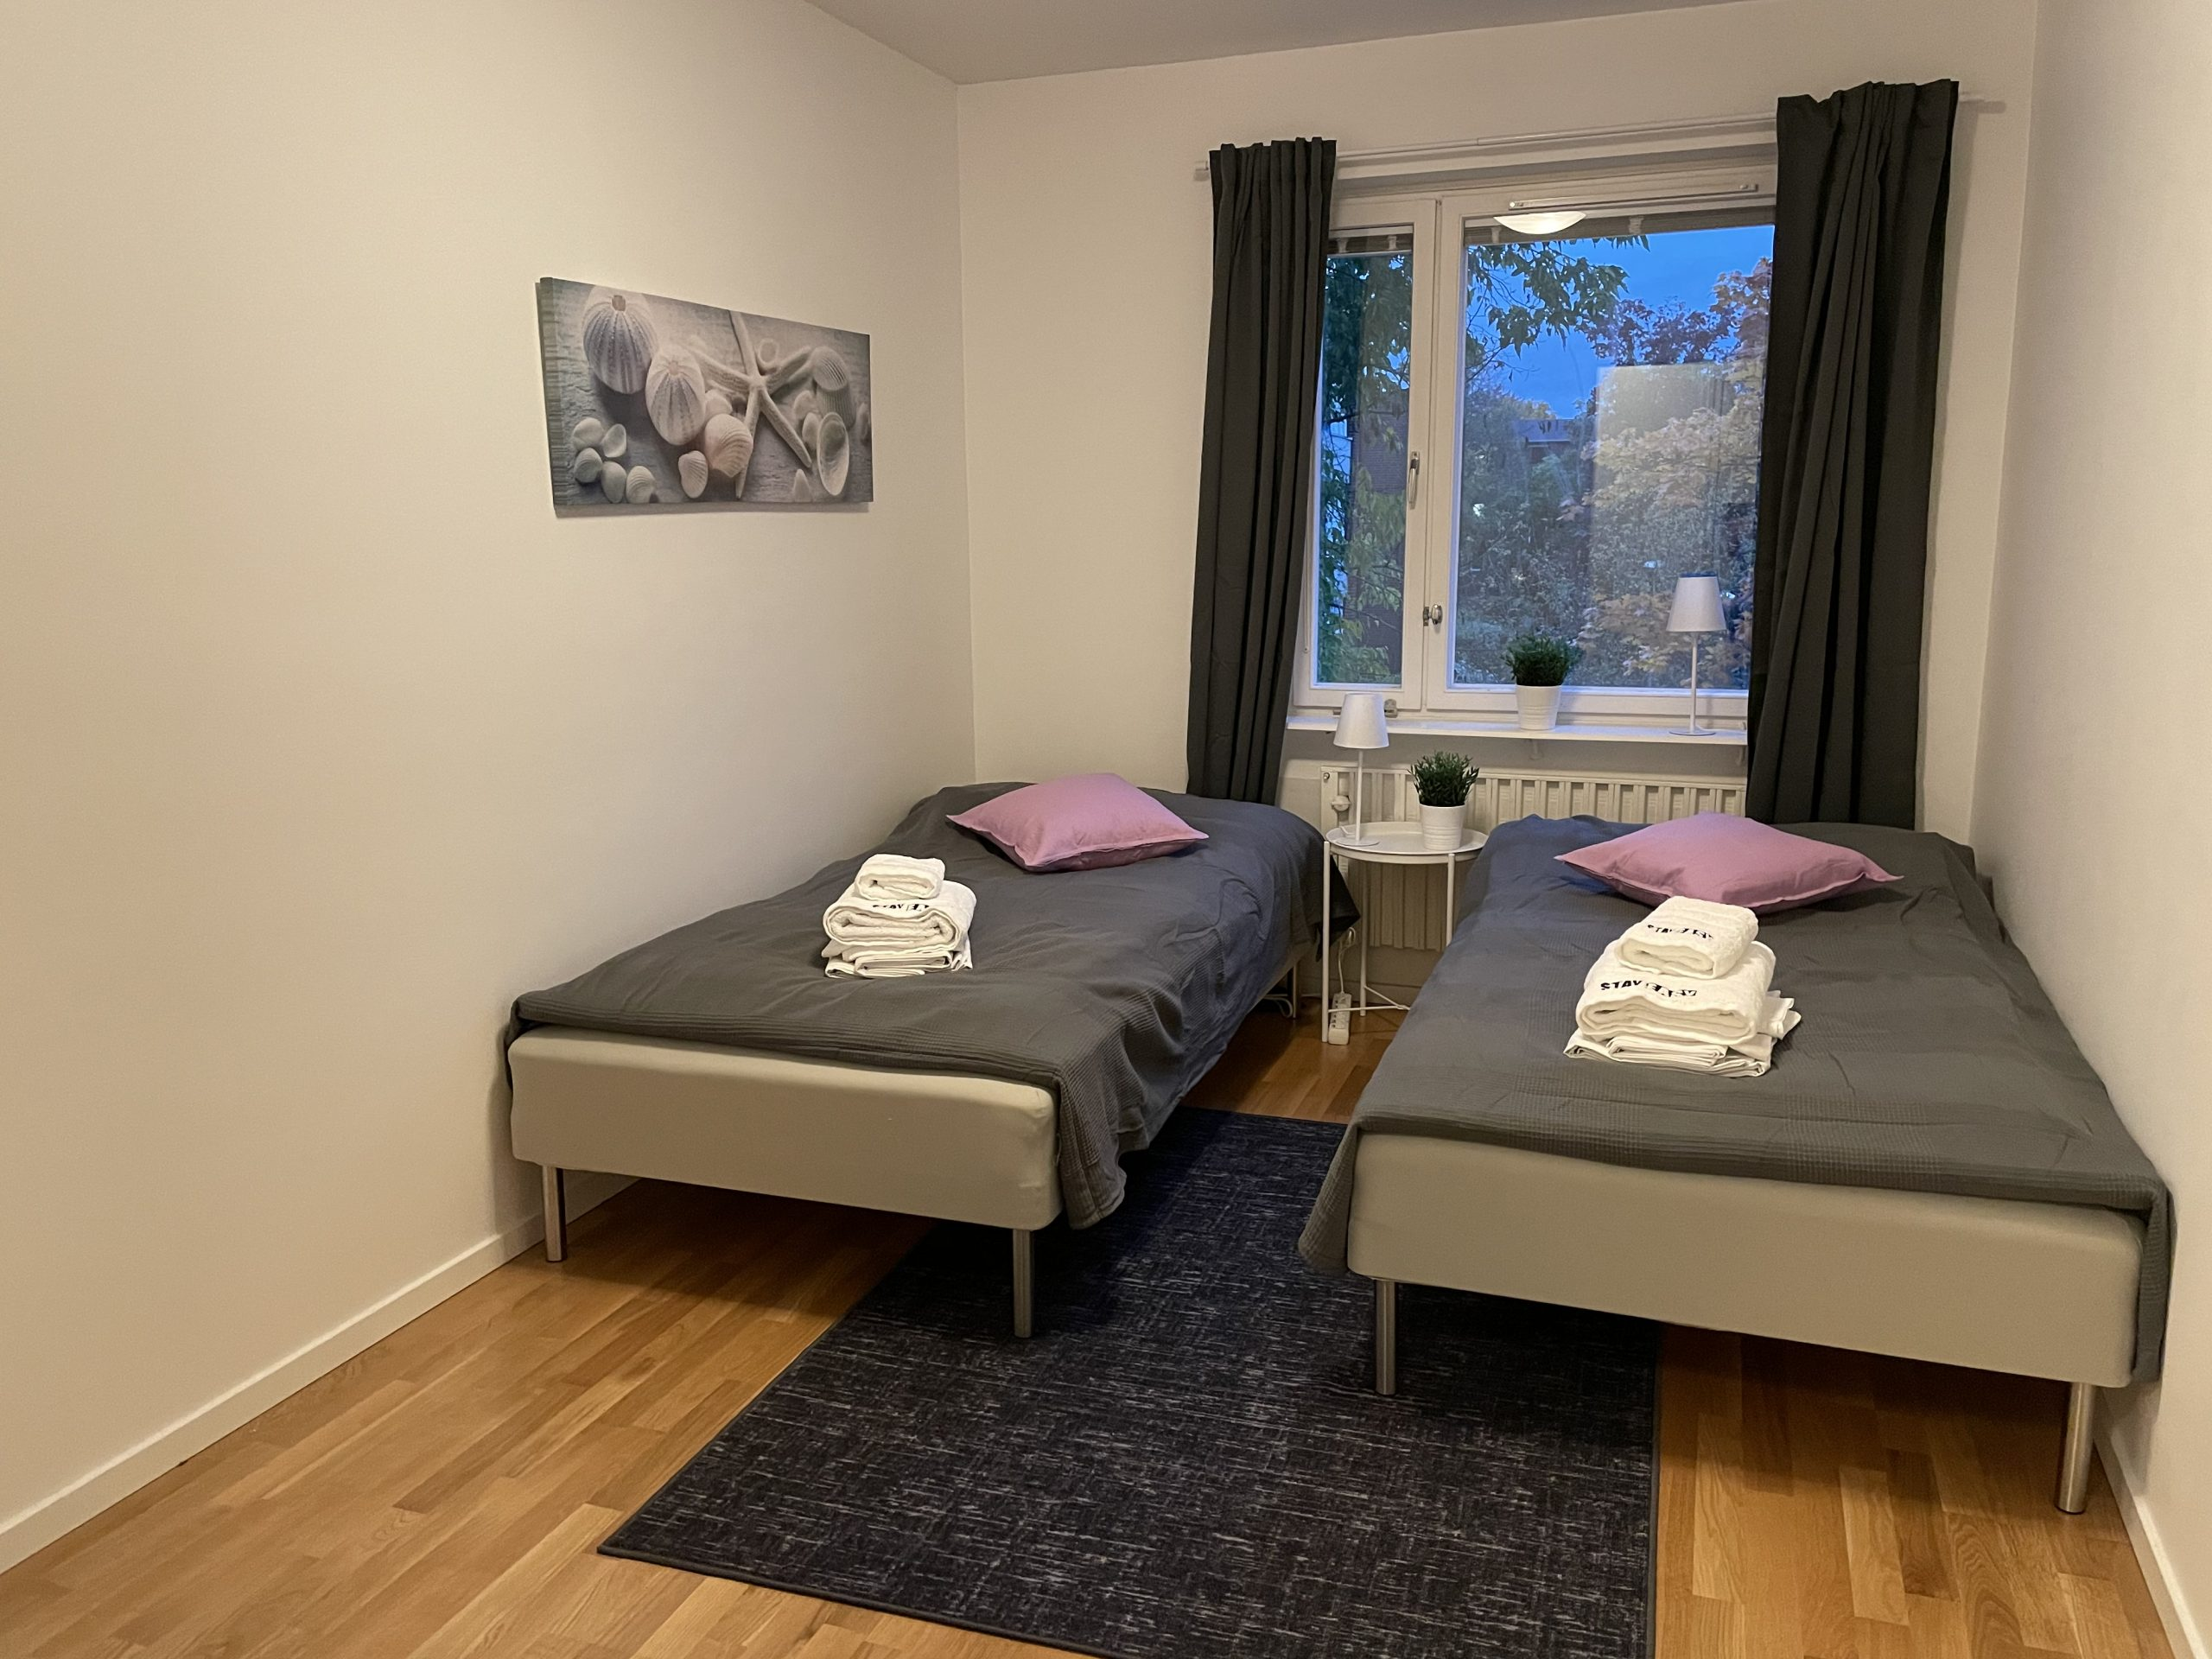 businessaccommodations, longstay, stay easy, furnished apartment